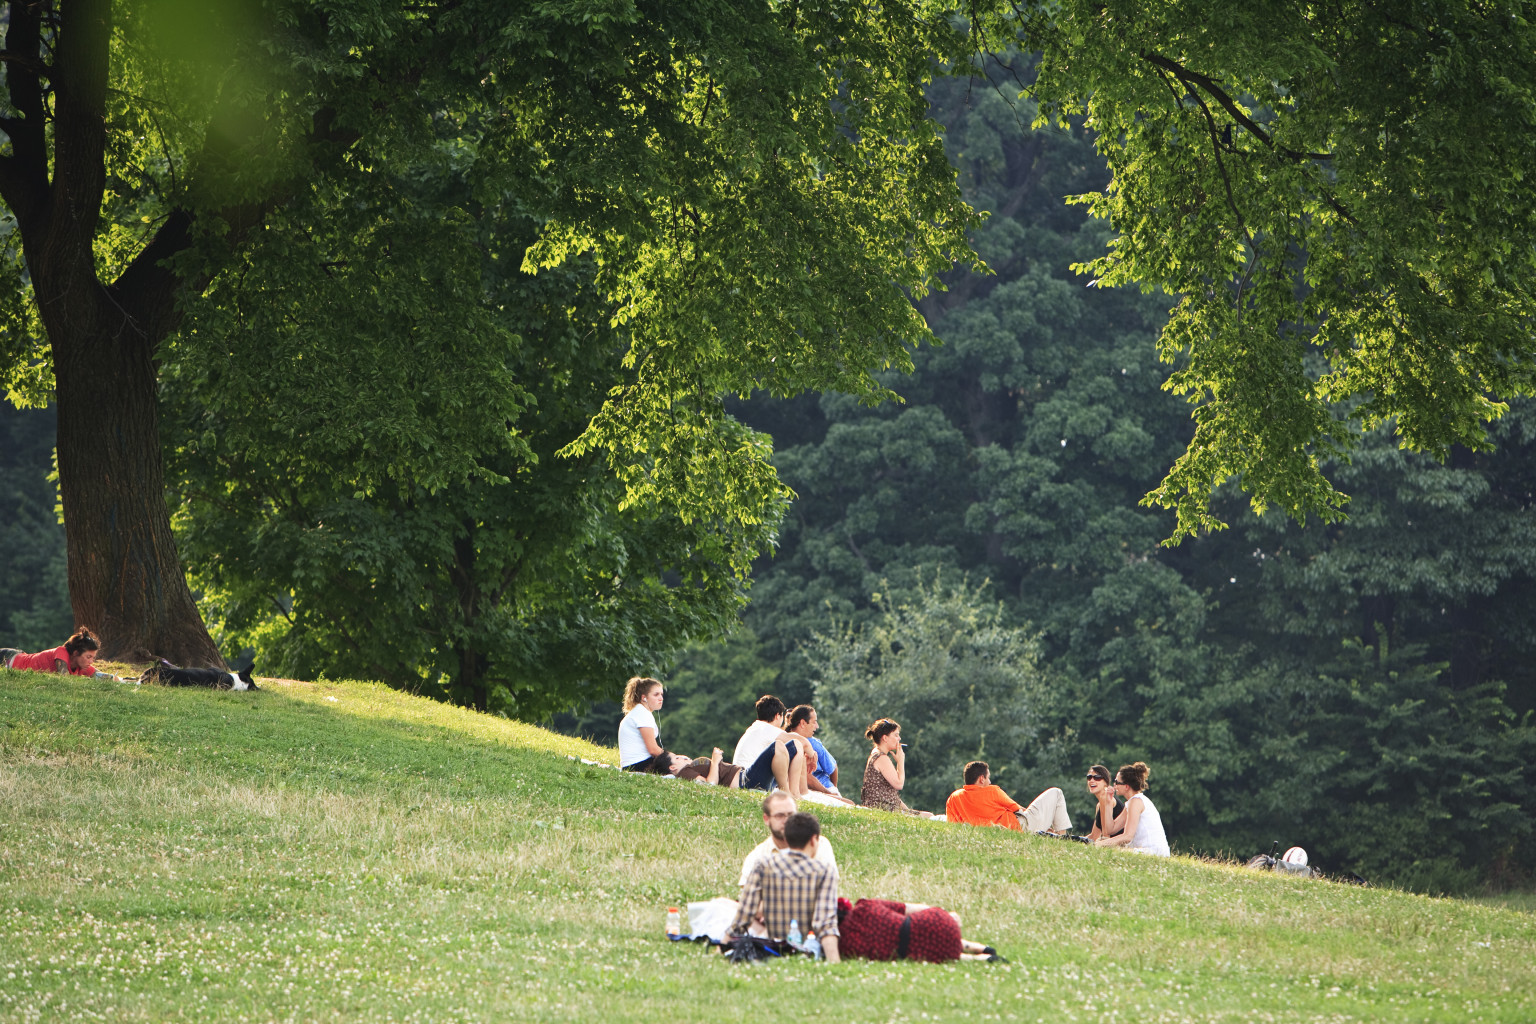 People on lawns in Prospect Park.